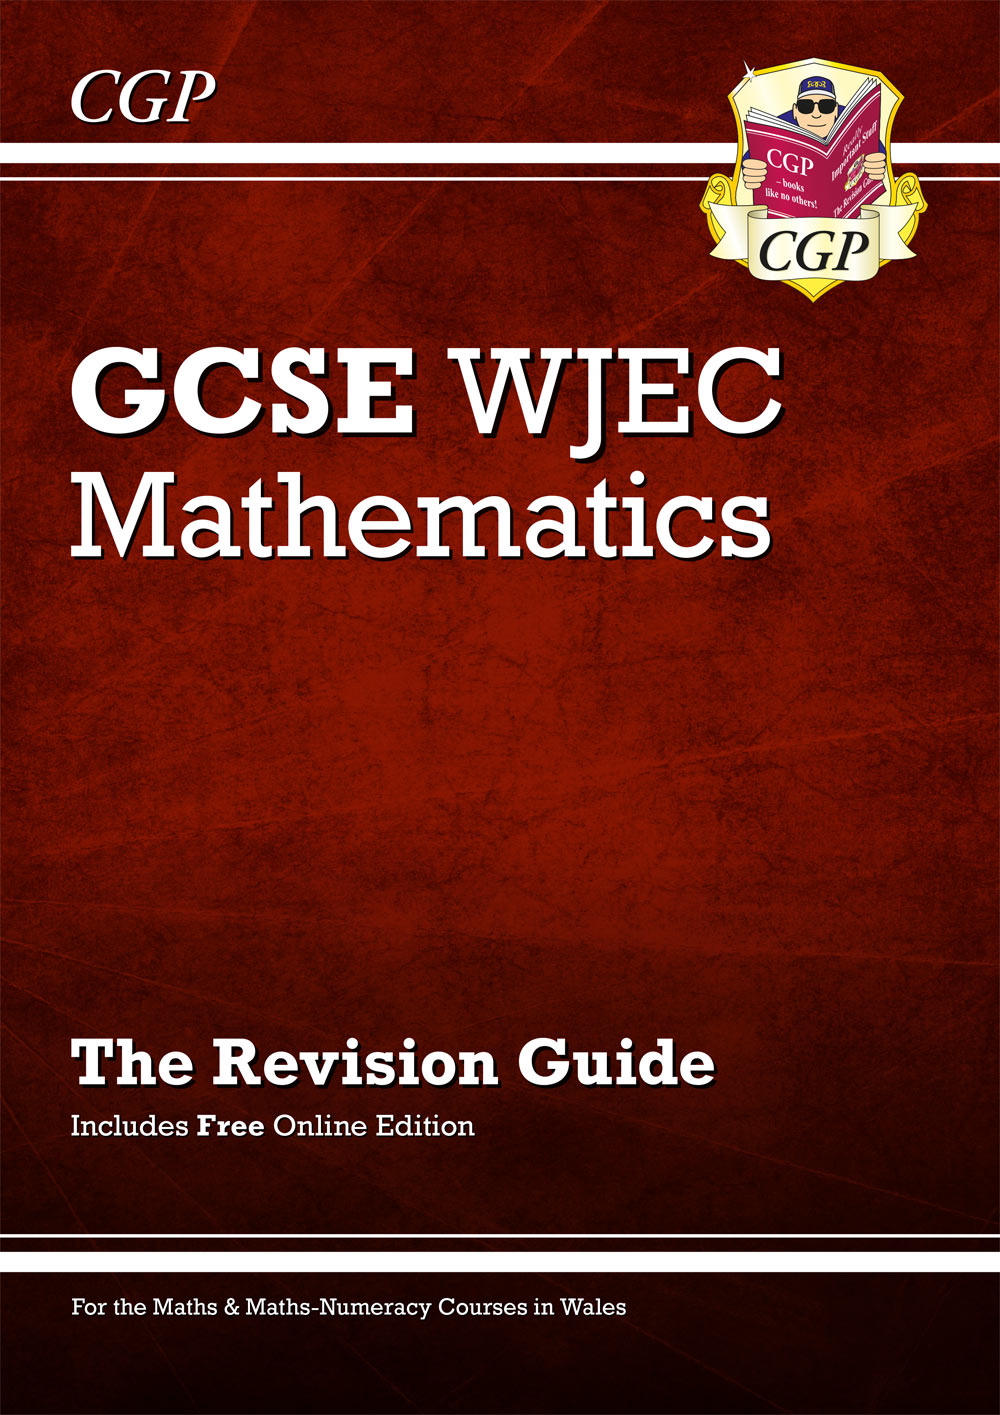 MWHR42 - New WJEC GCSE Maths Revision Guide (with Online Edition)